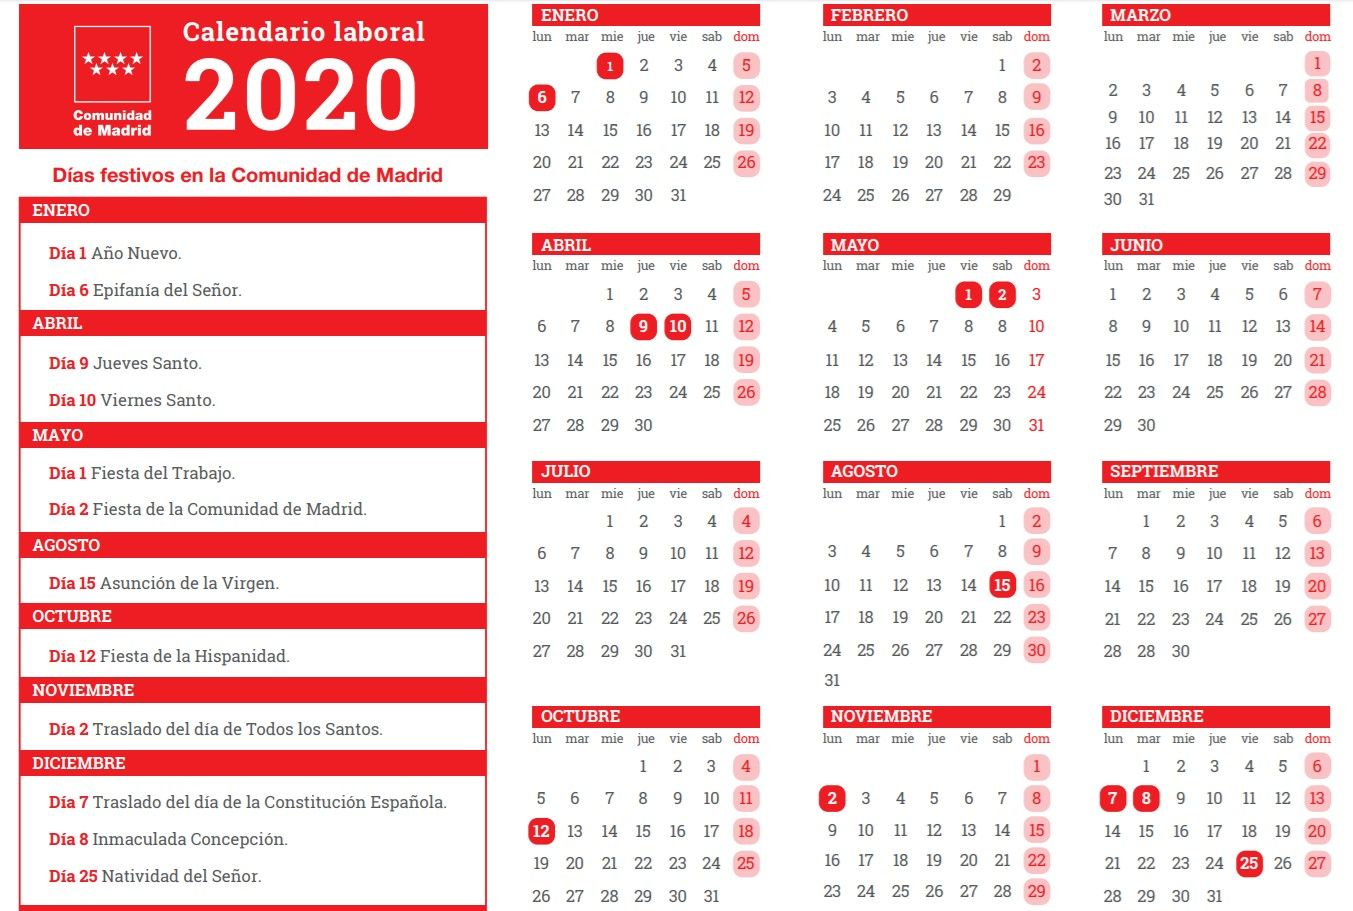 Calendario Laboral 2020 Madrid